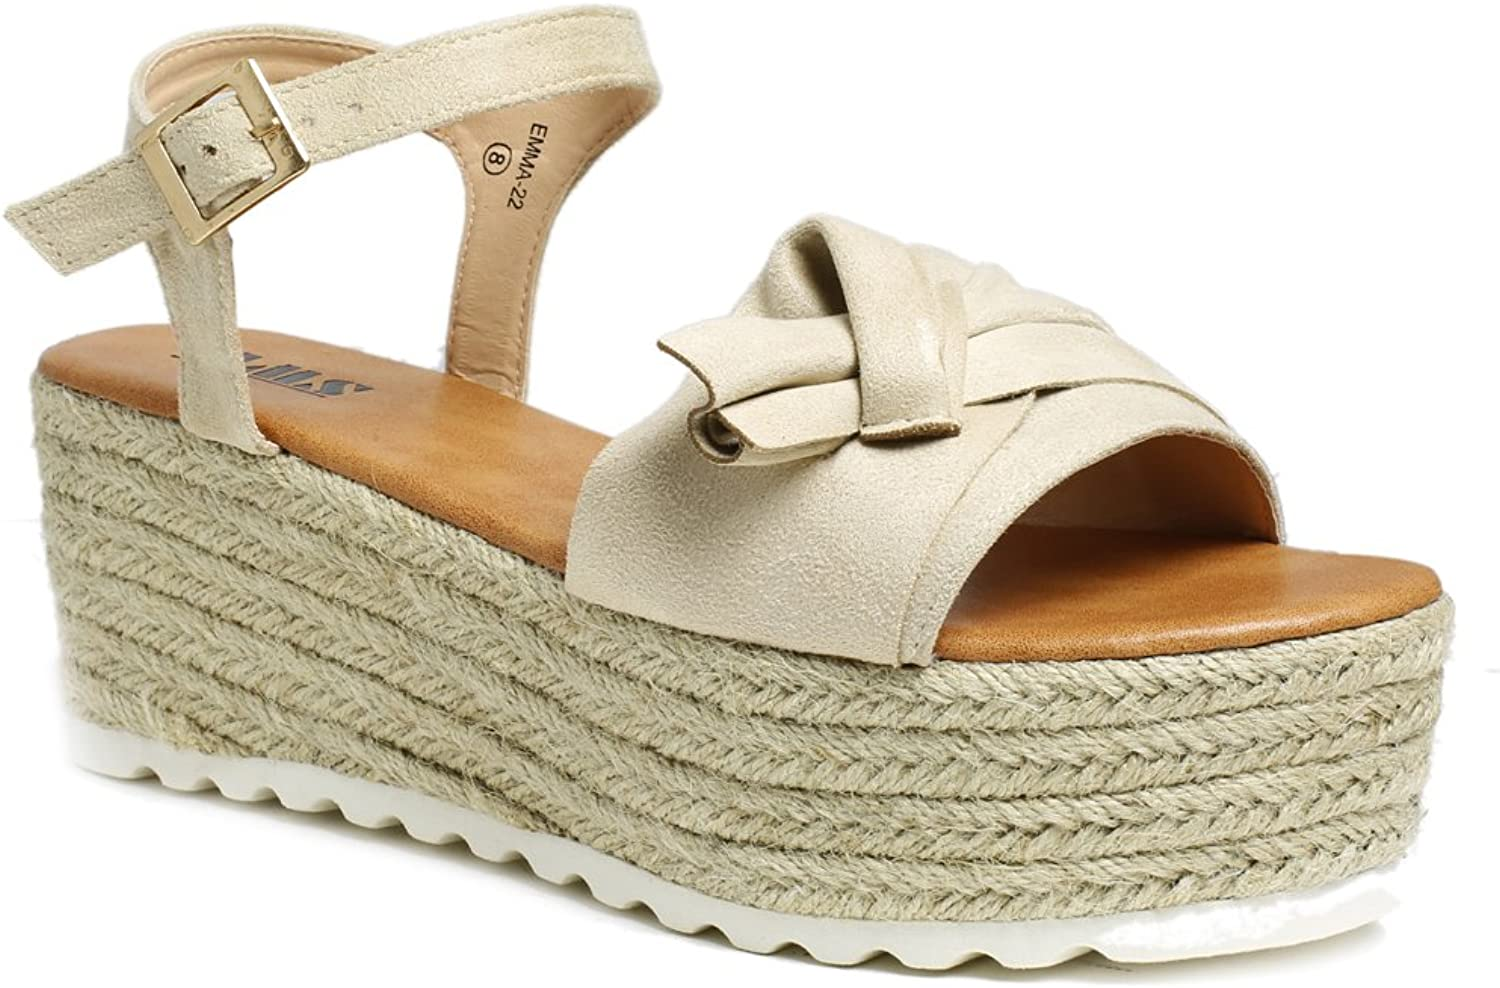 AMS Womens Wedge Platform Espadrille Sandals with Ankle Strap